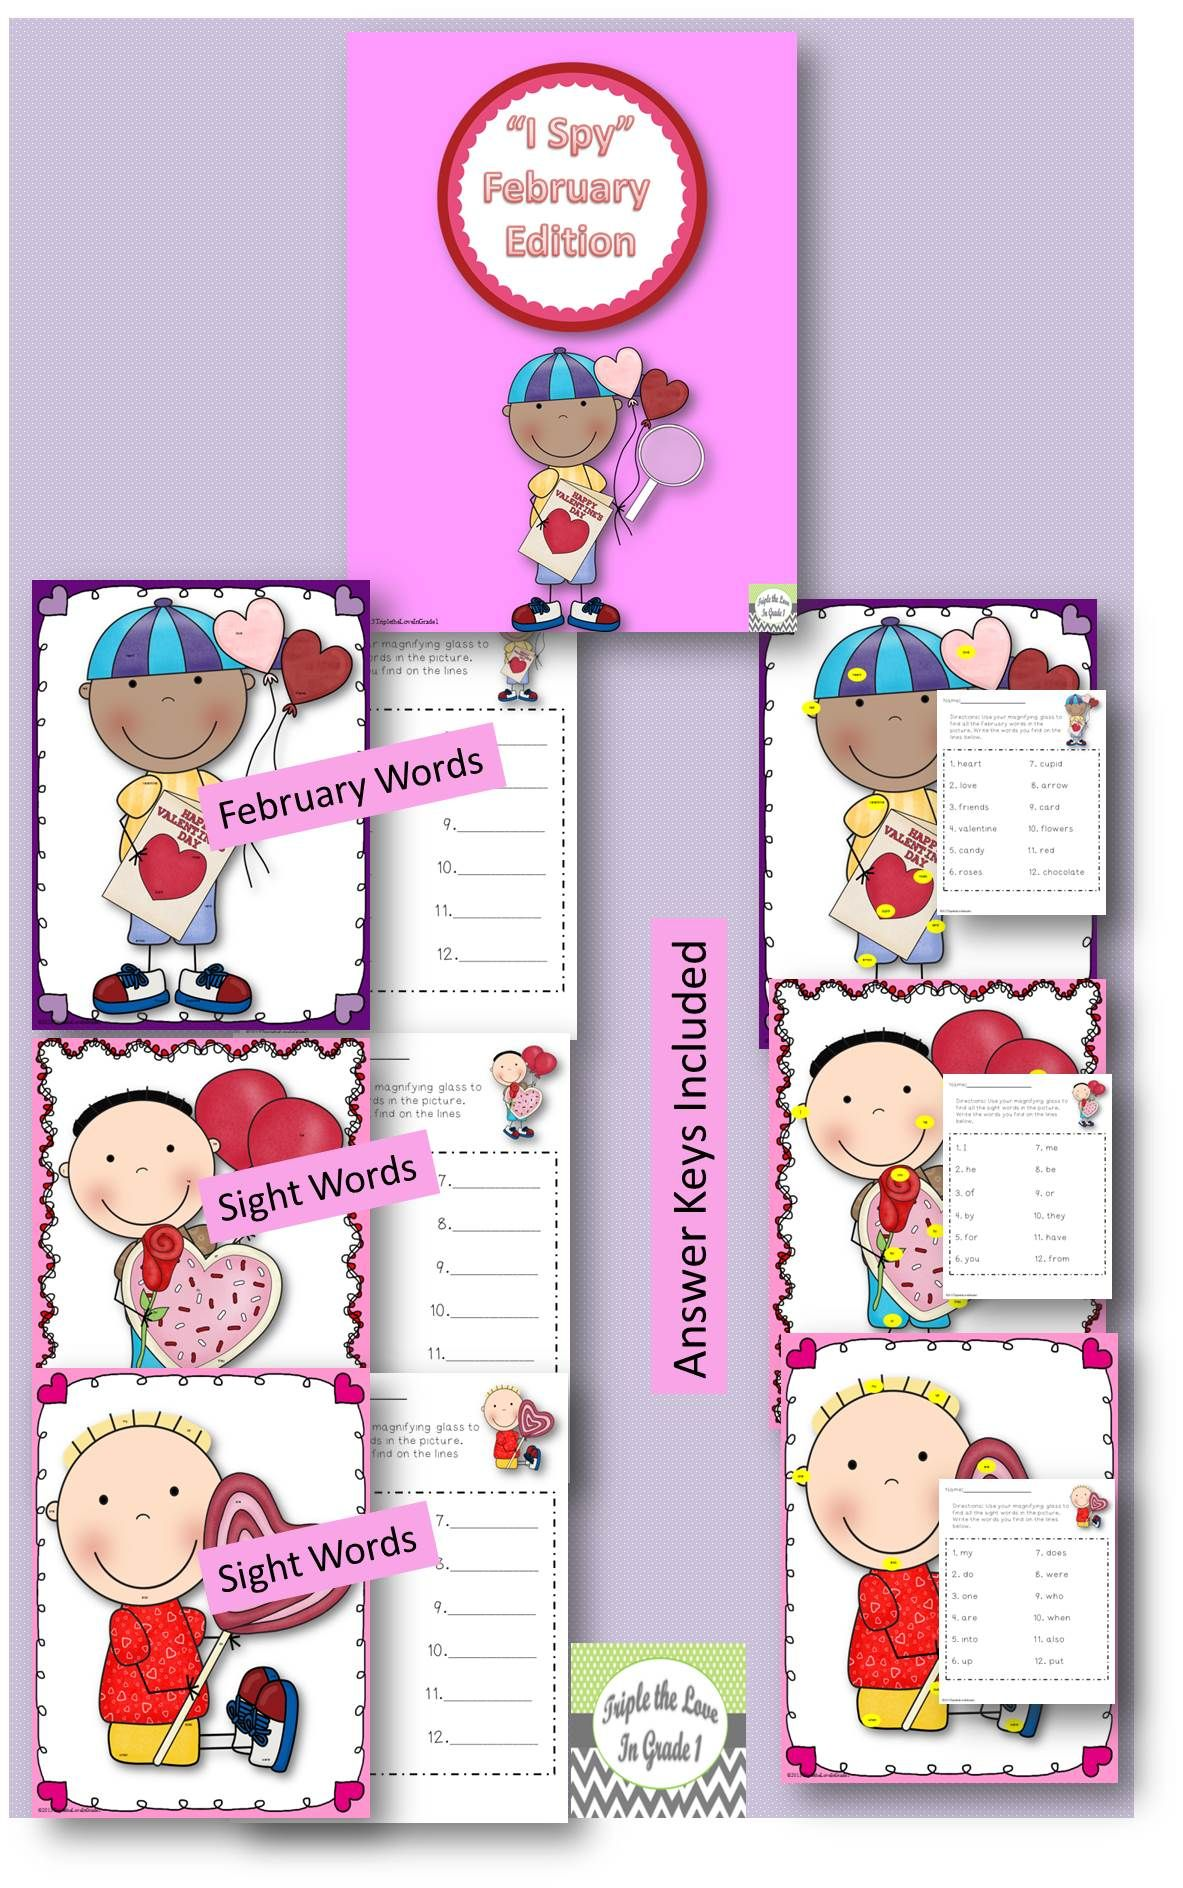 Look And Find February Edition Sight Words